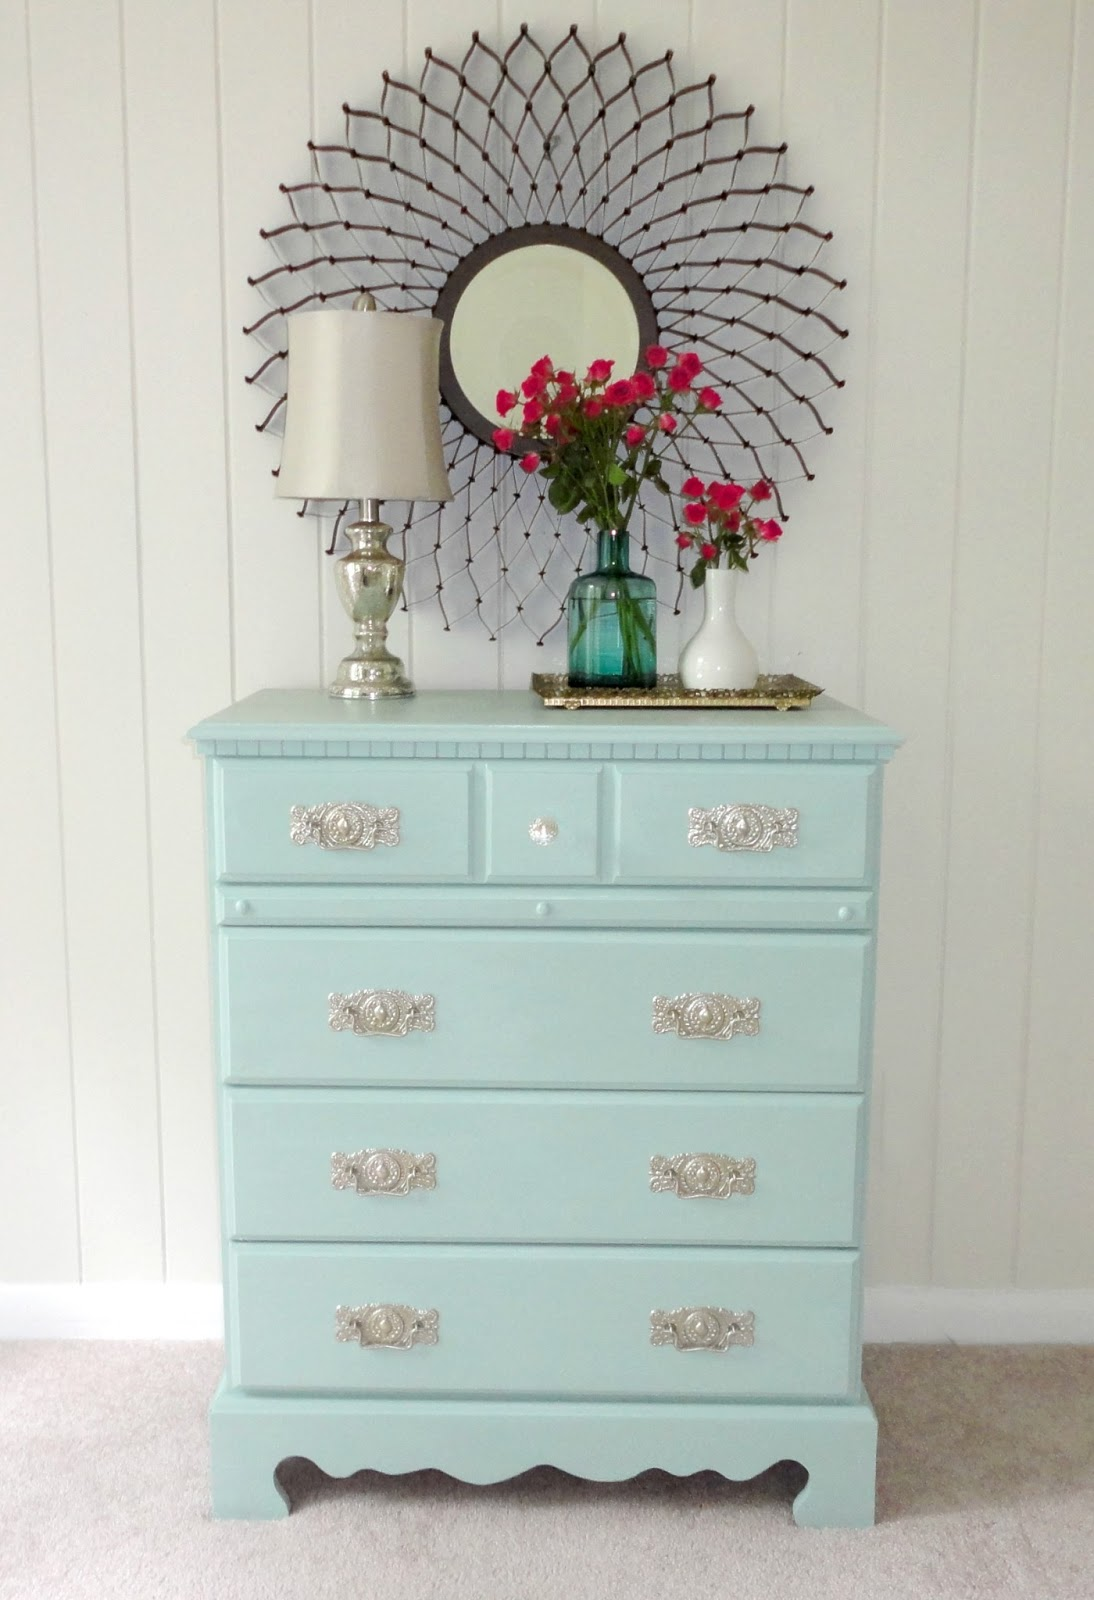 Paint For Bedroom Furniture Livelovediy How To Paint Laminate Furniture In 3 Easy Steps